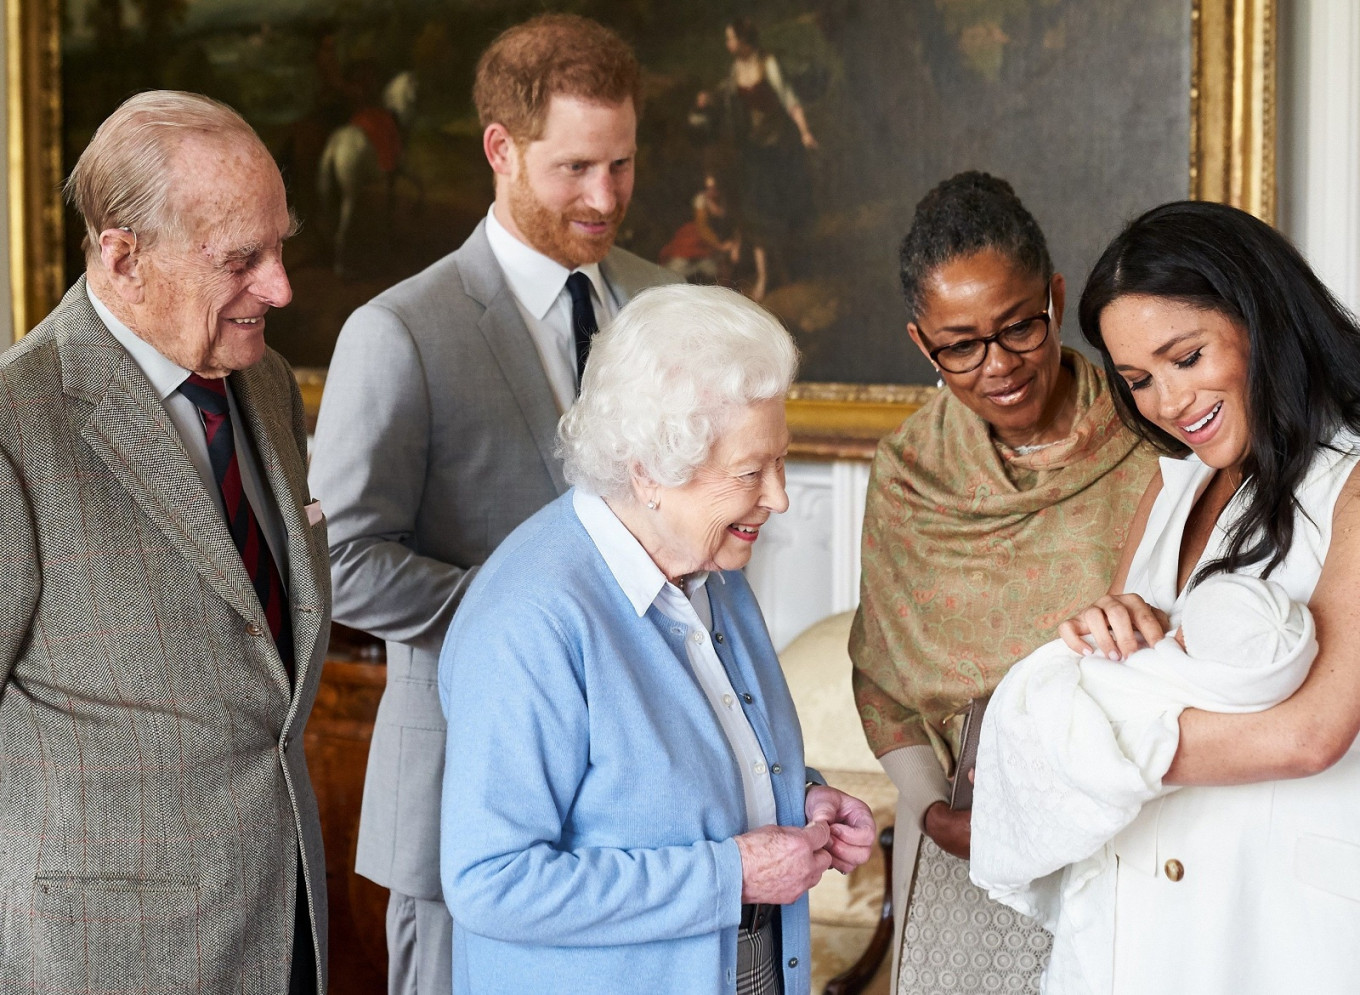 When Archie first met the Queen